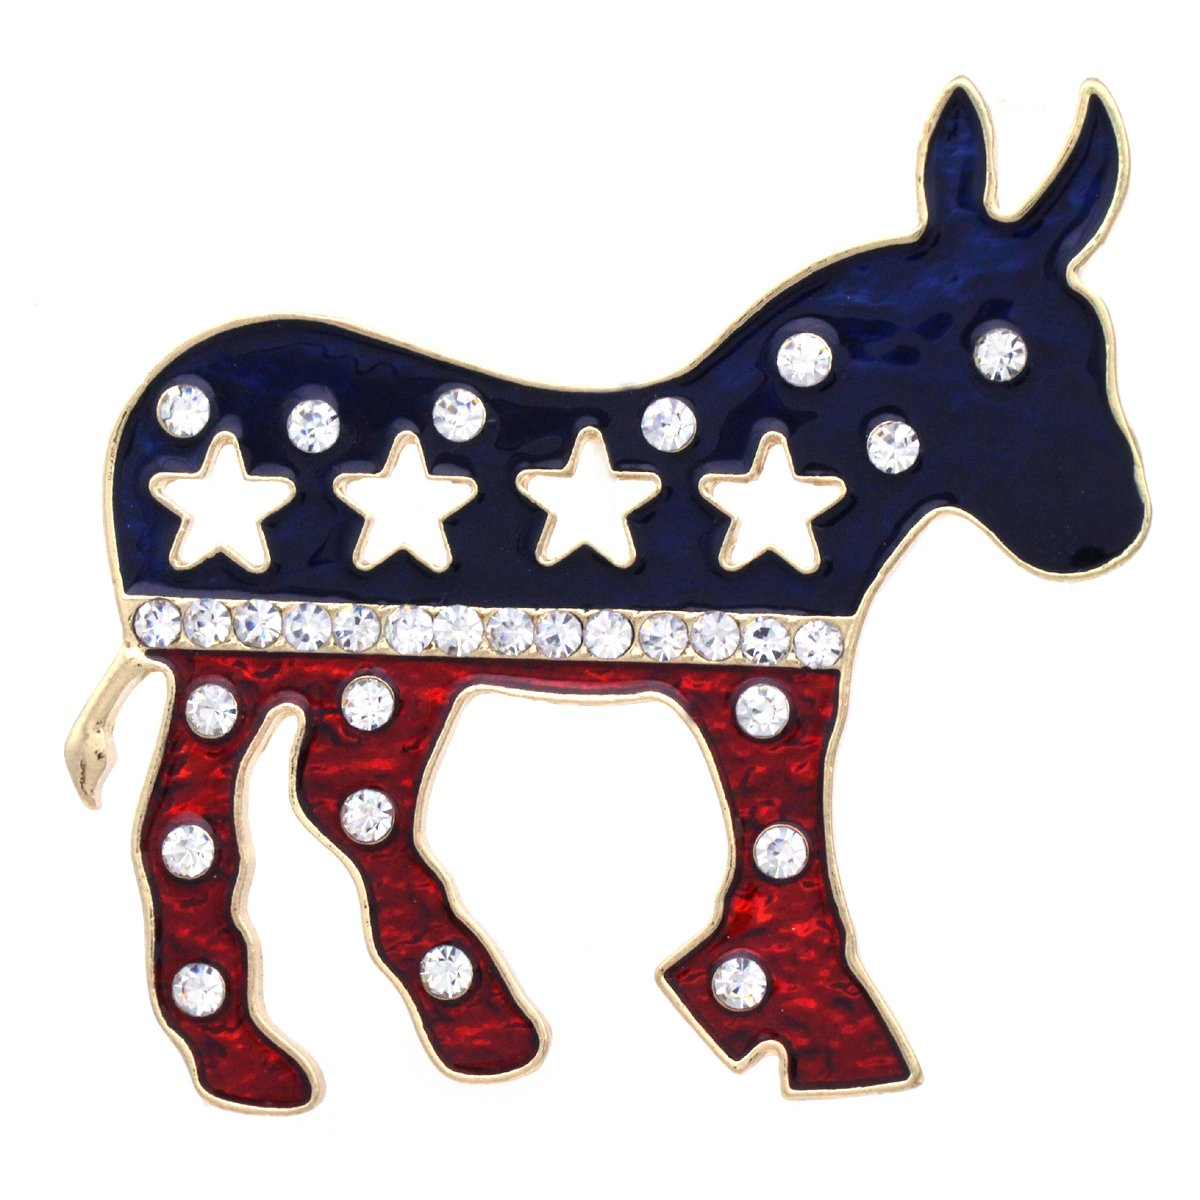 SoulBreezeCollection Democratic Party Symbol Donkey Brooch Pin